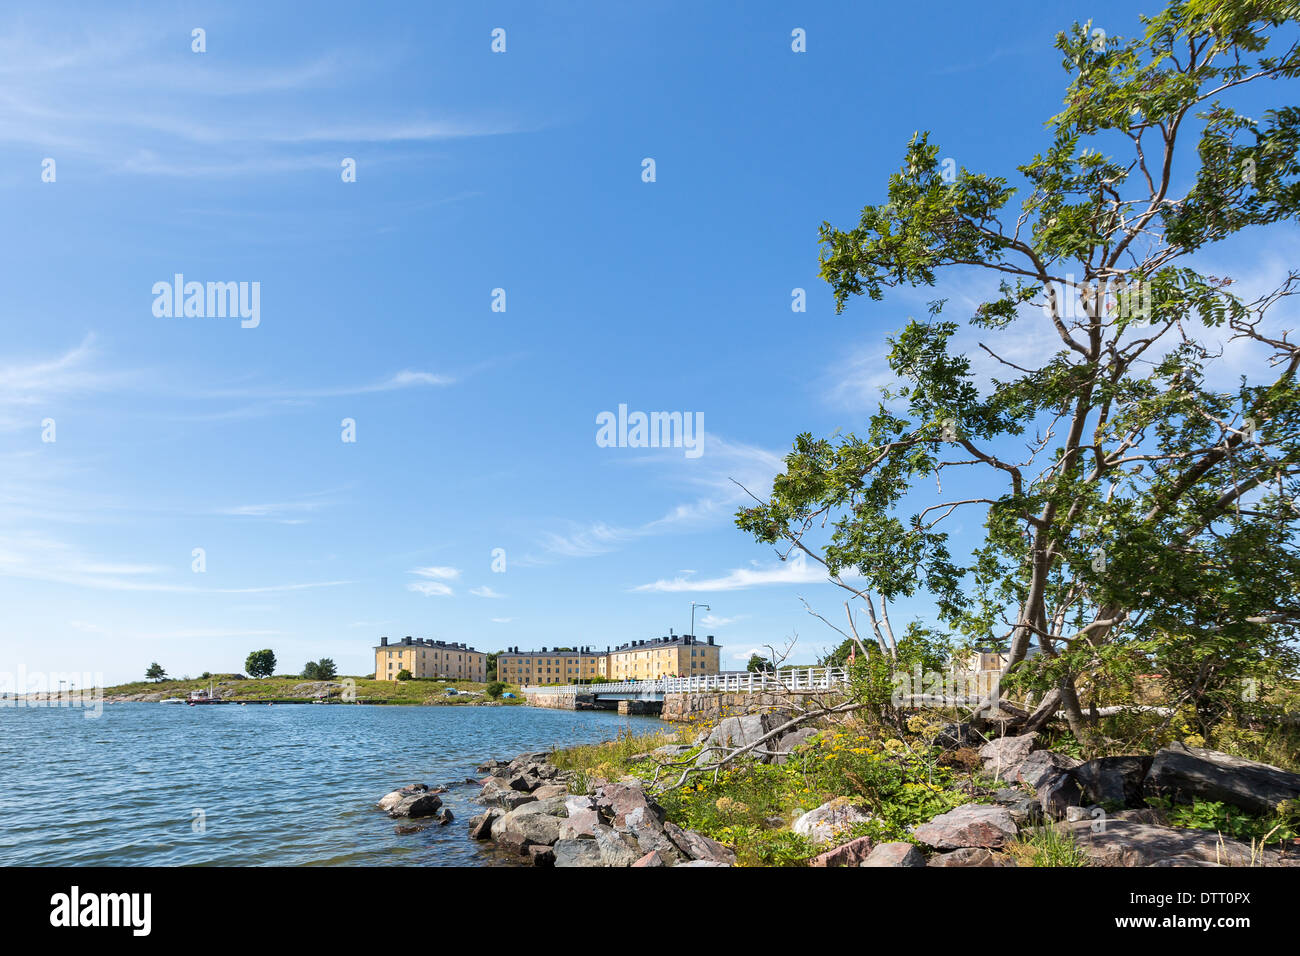 A view from Länsi-Musta island and its barracks in Suomenlinna fort islands in front of Helsinki, Finland, EU - Stock Image